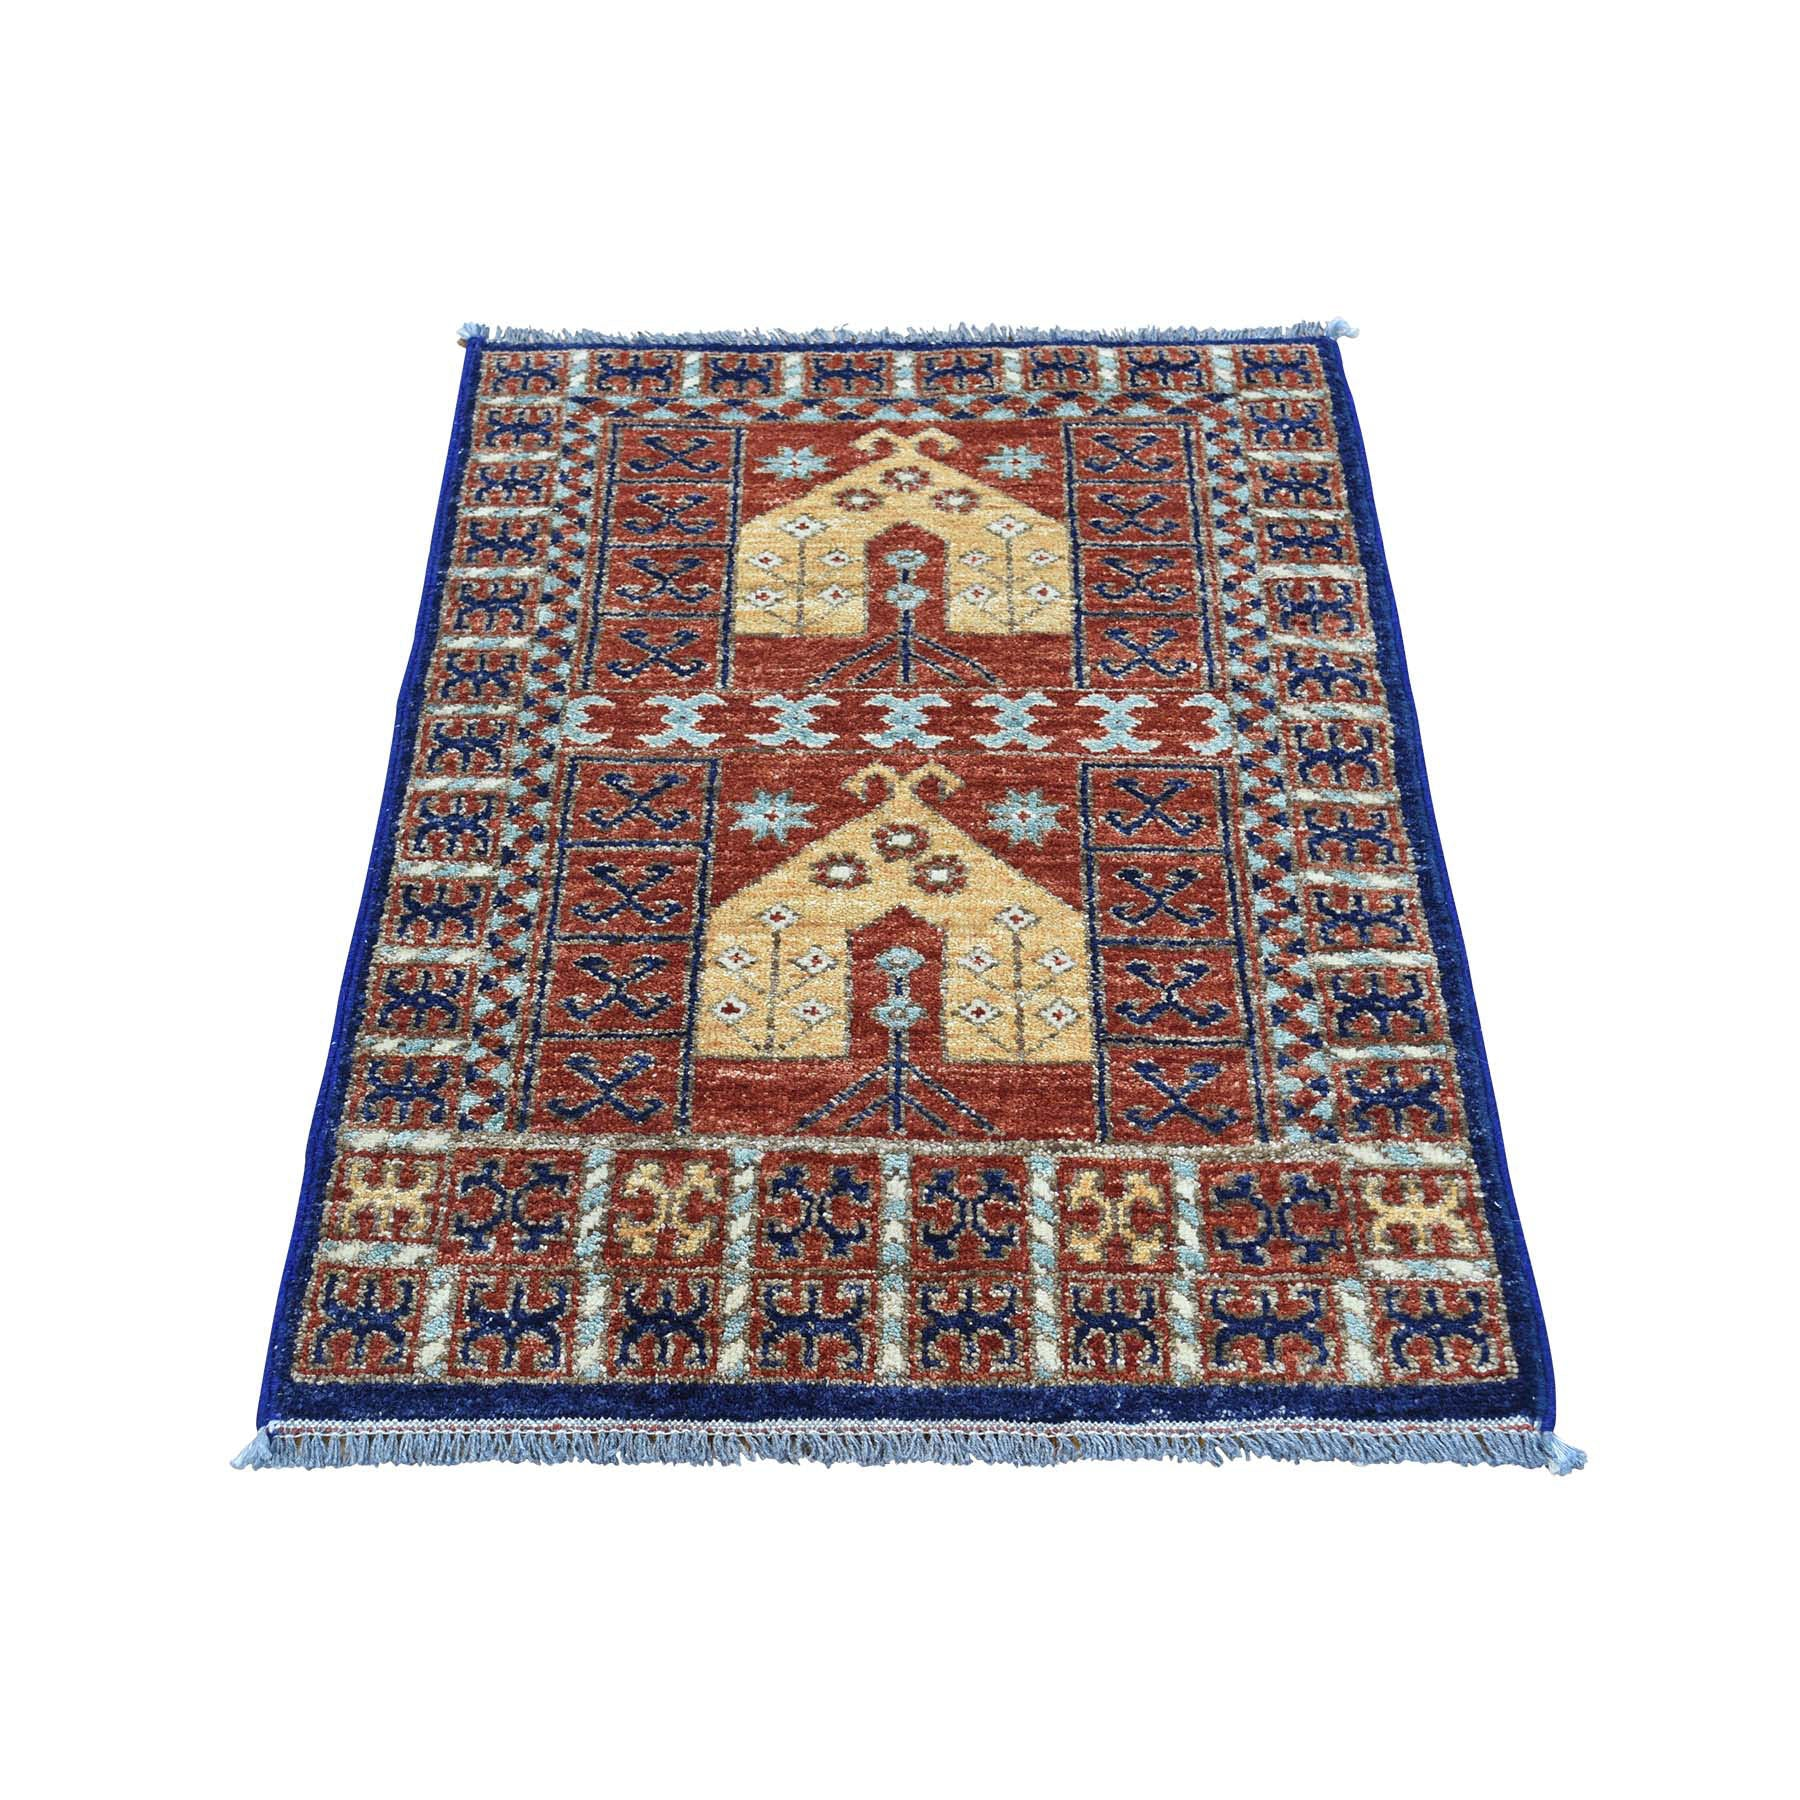 "Handmade Tribal & Geometric Rectangle Rug > Design# SH31748 > Size: 2'-0"" x 3'-2"" [ONLINE ONLY]"